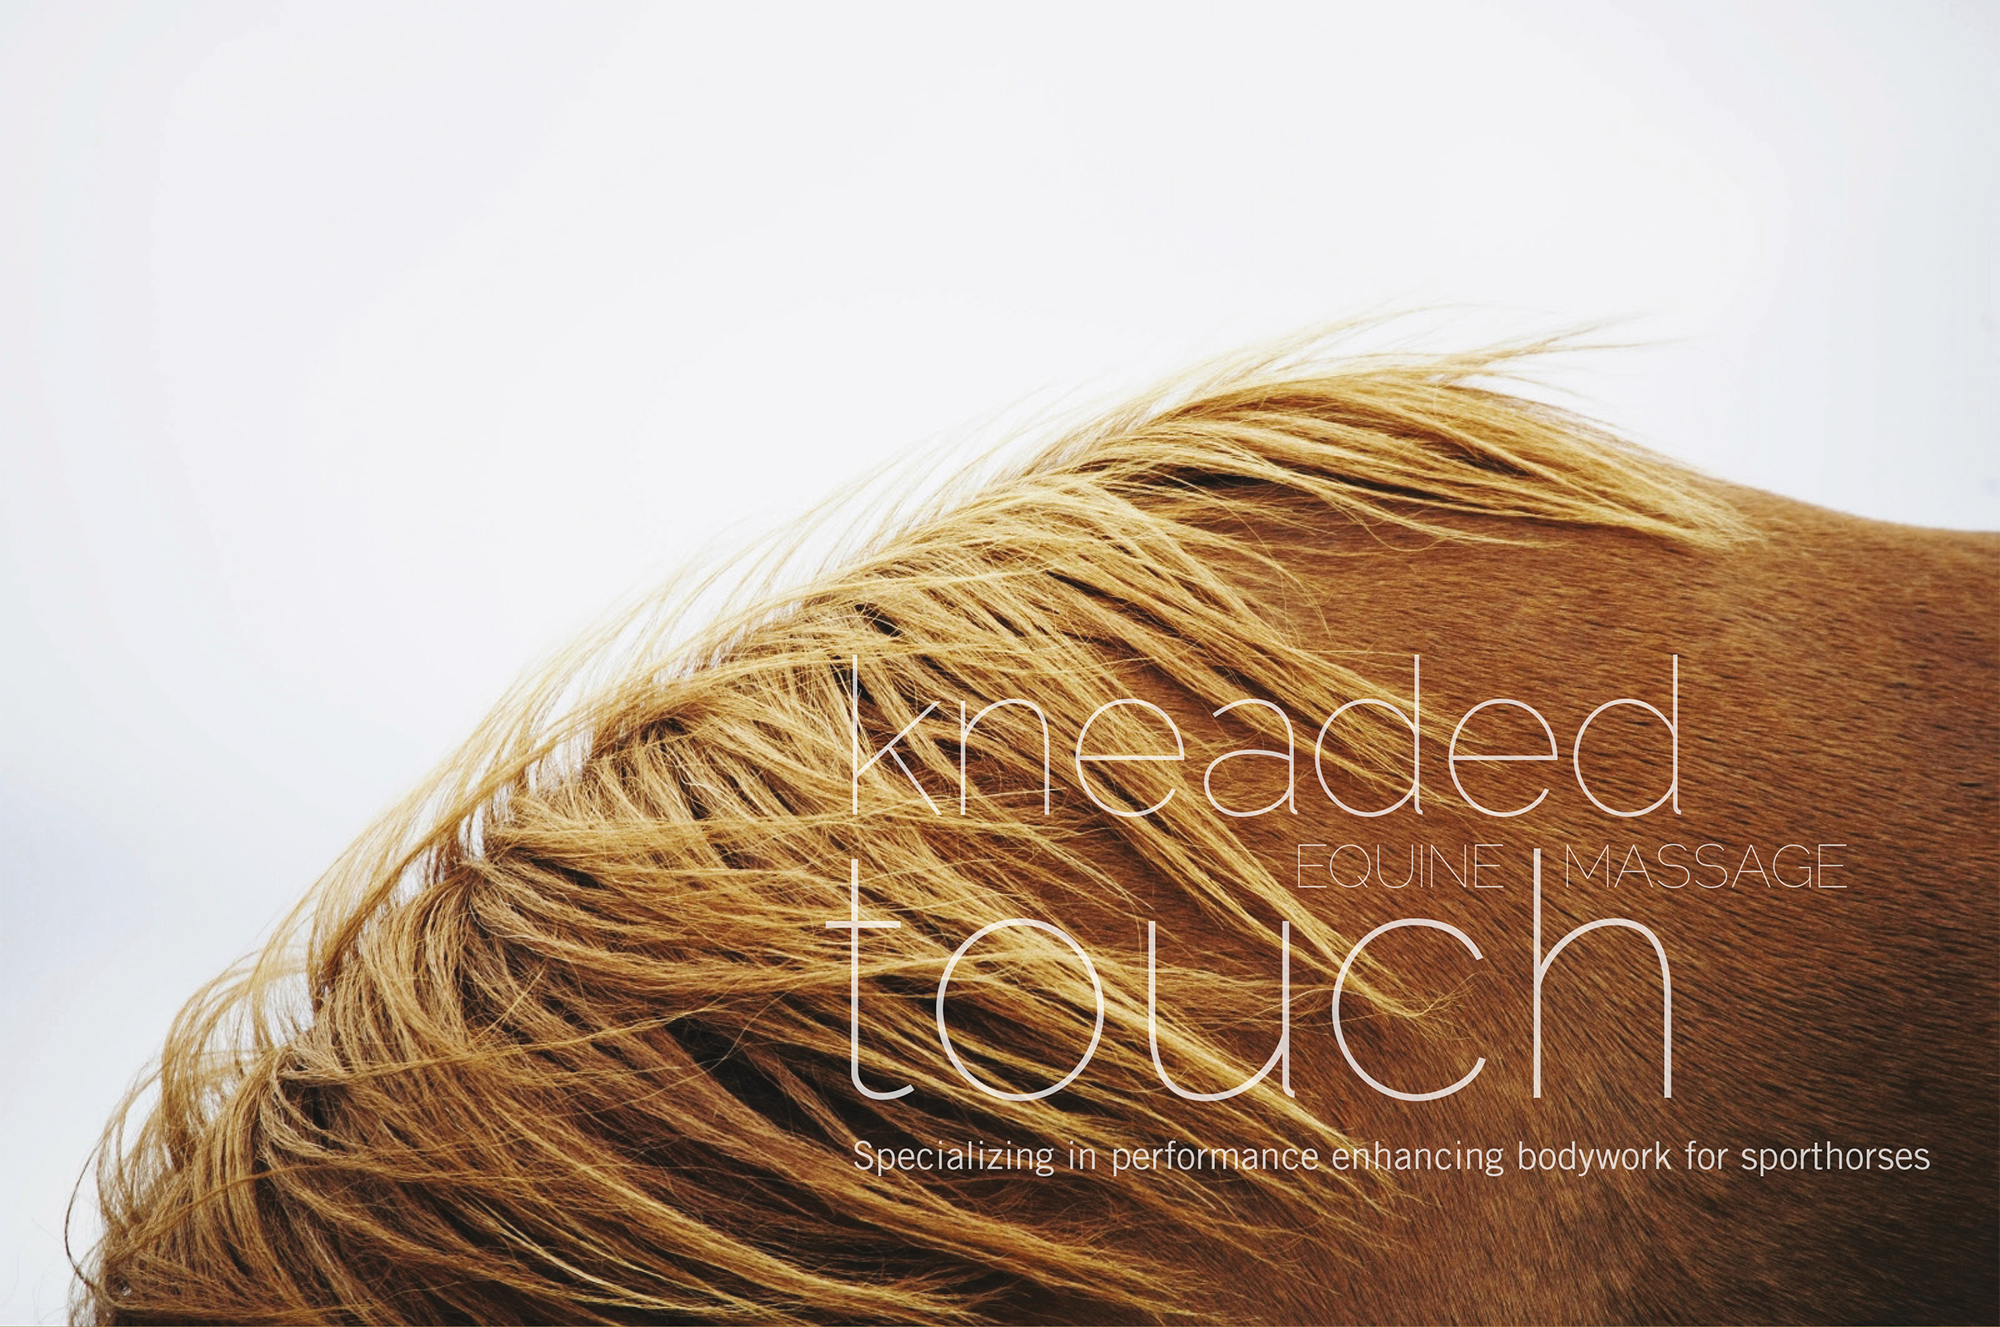 Logo + Identity for Kneaded Touch Equine Massage